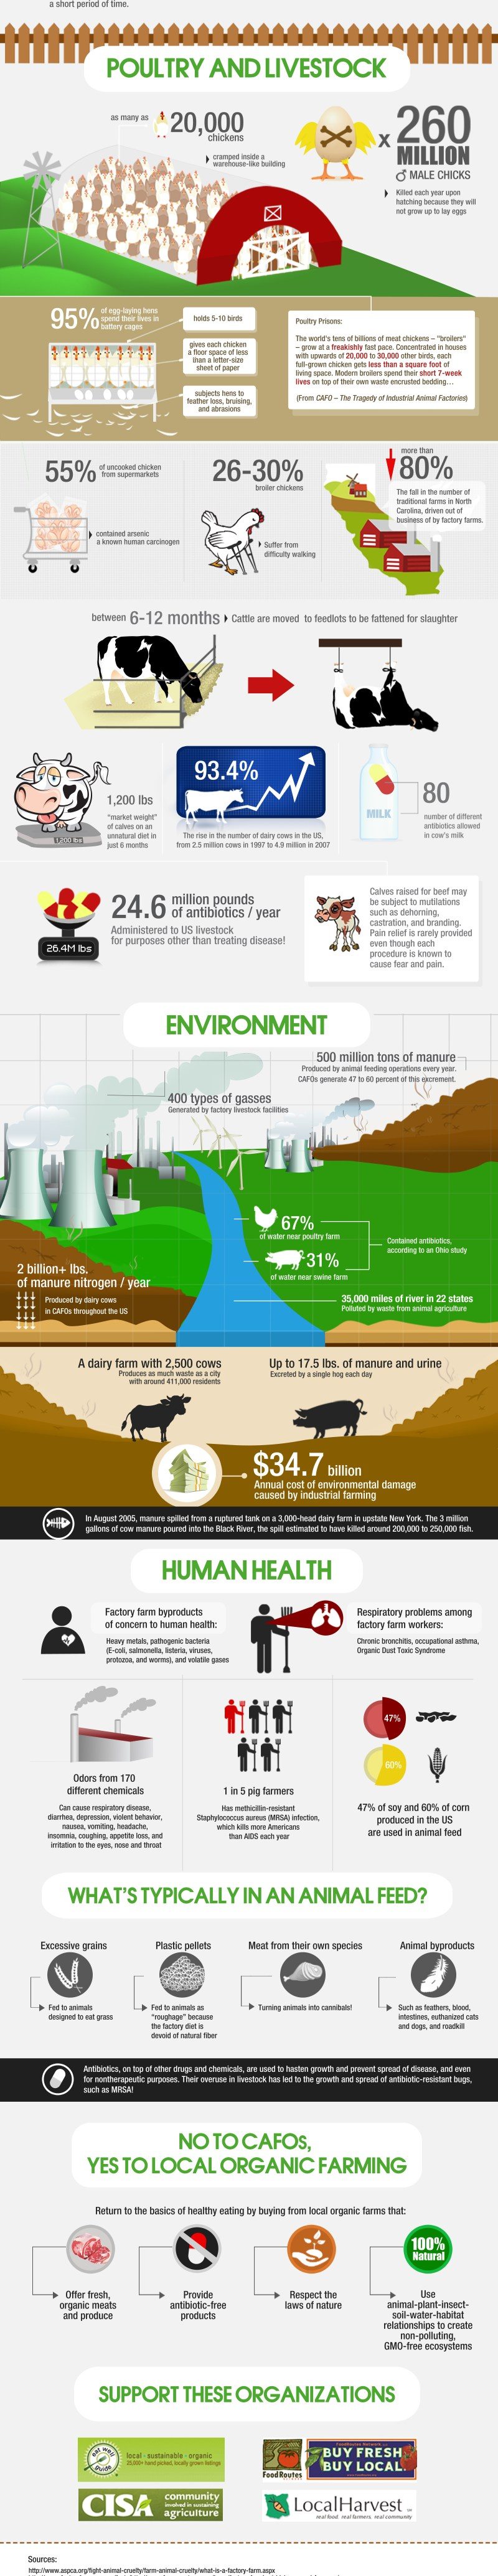 truth-about-factory-farms-highres